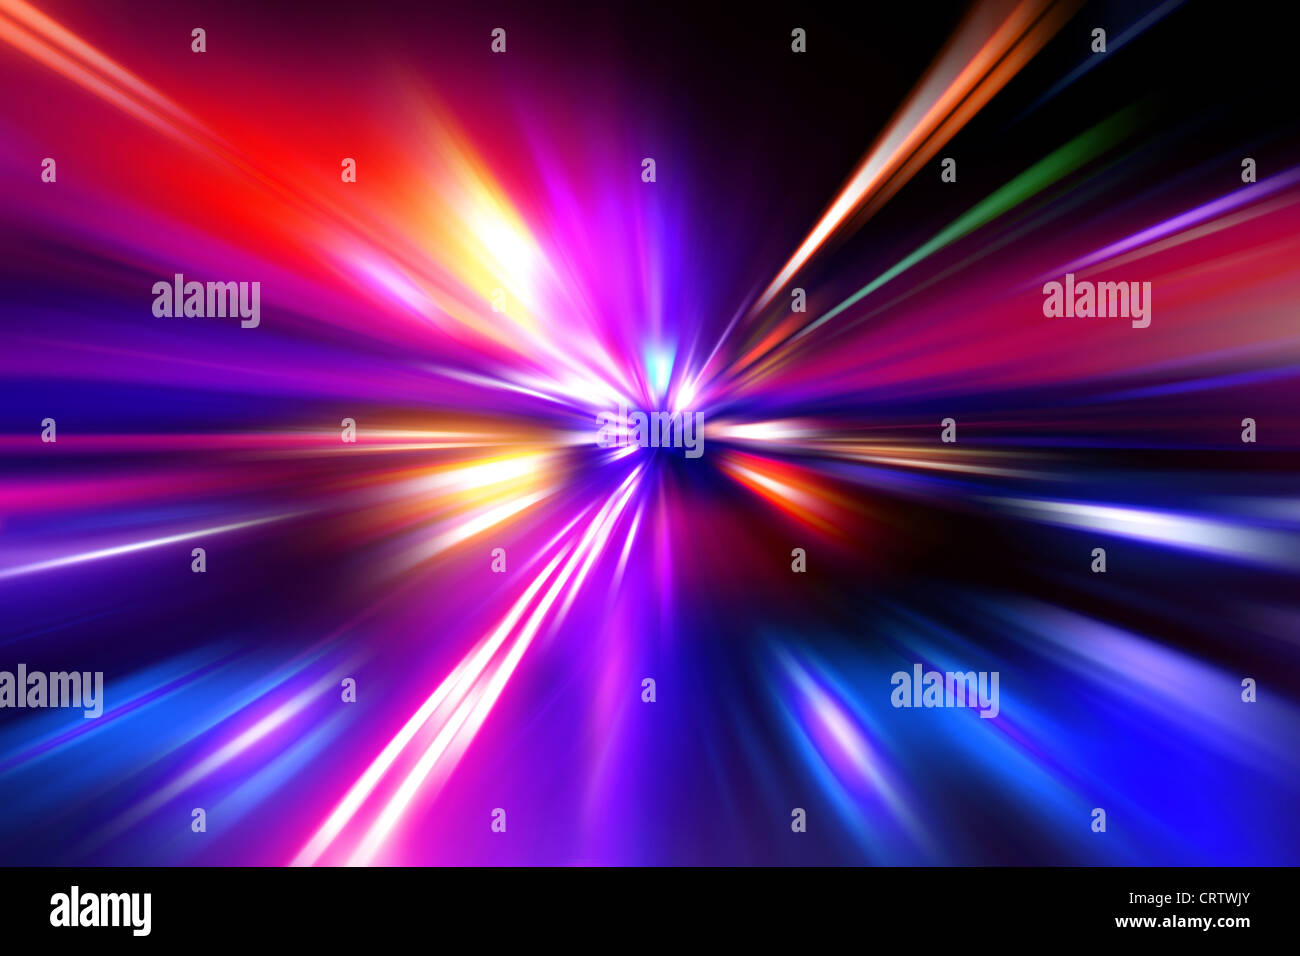 colorful radial radiant effect - Stock Image